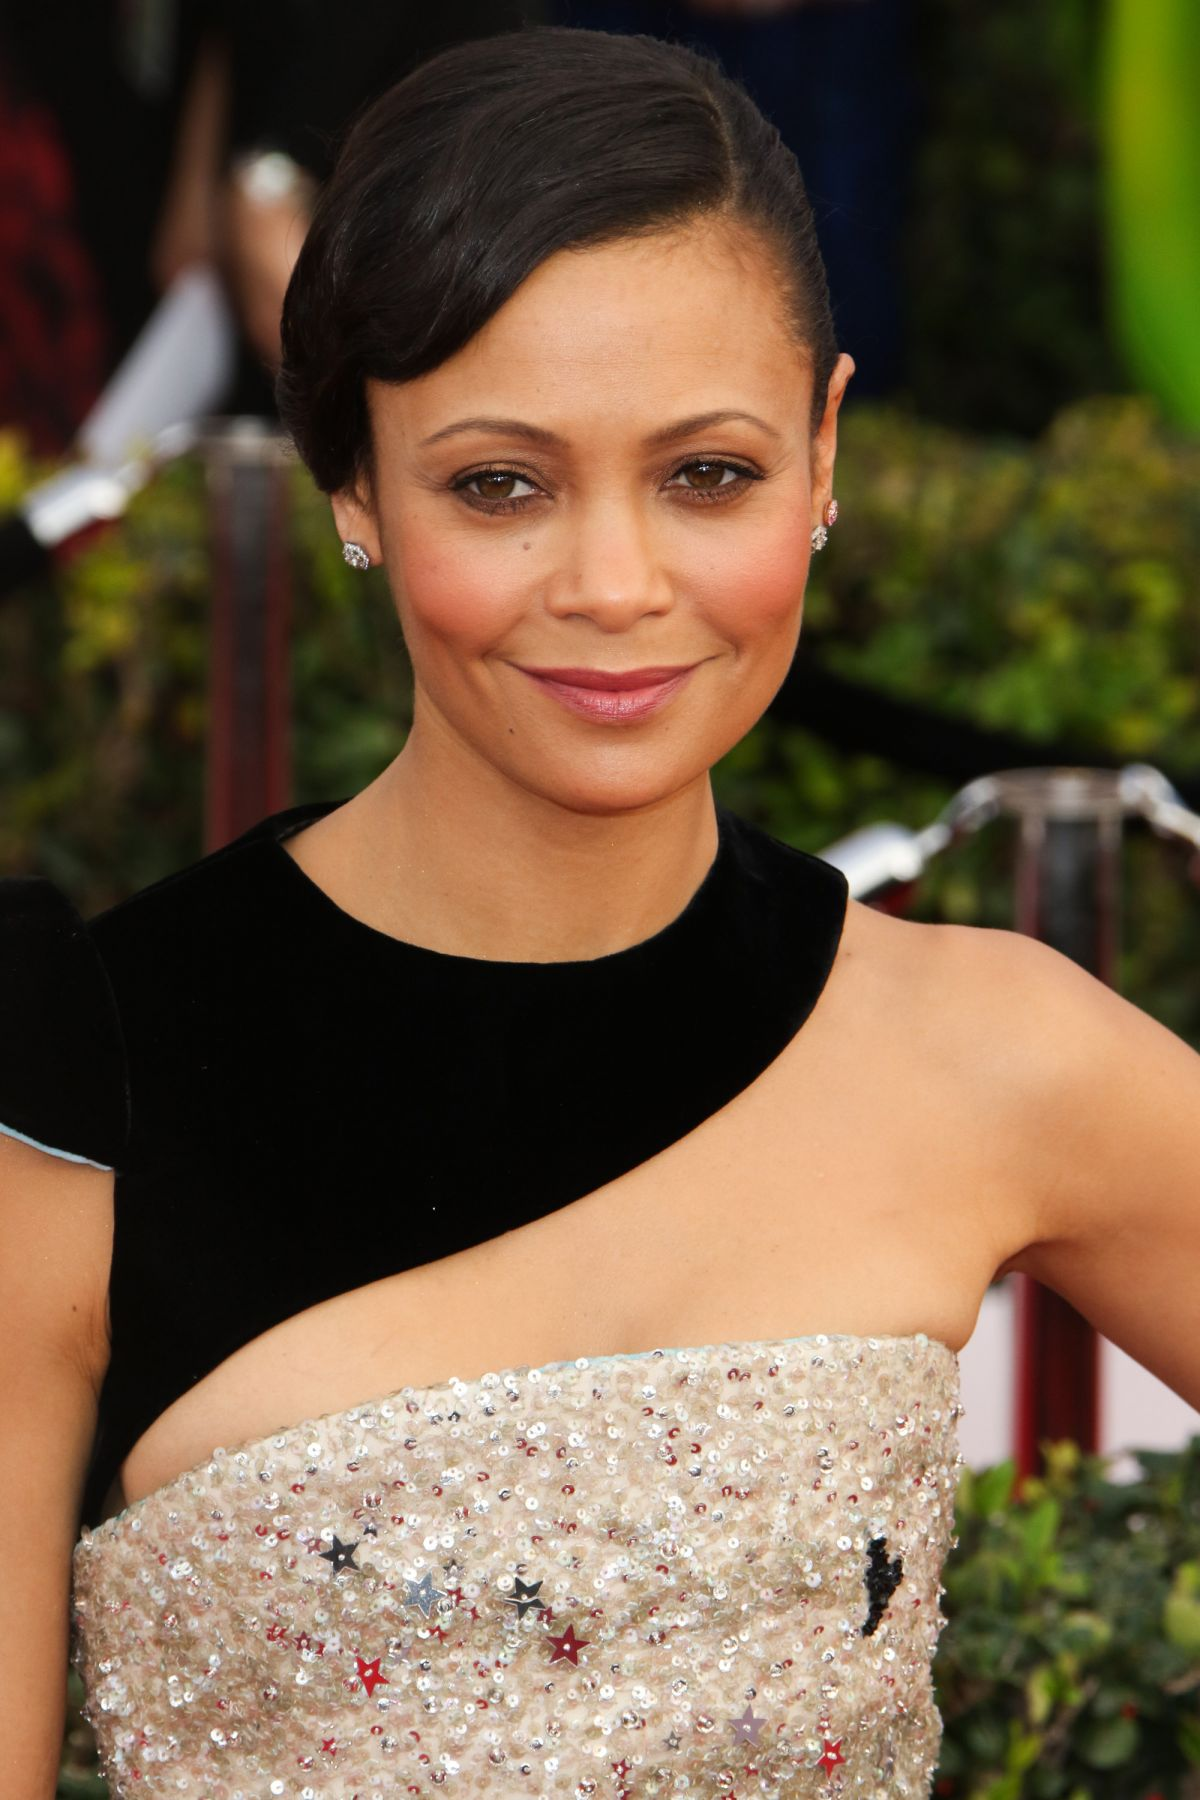 Thandie Newton Left Charlies Angels After a Racist